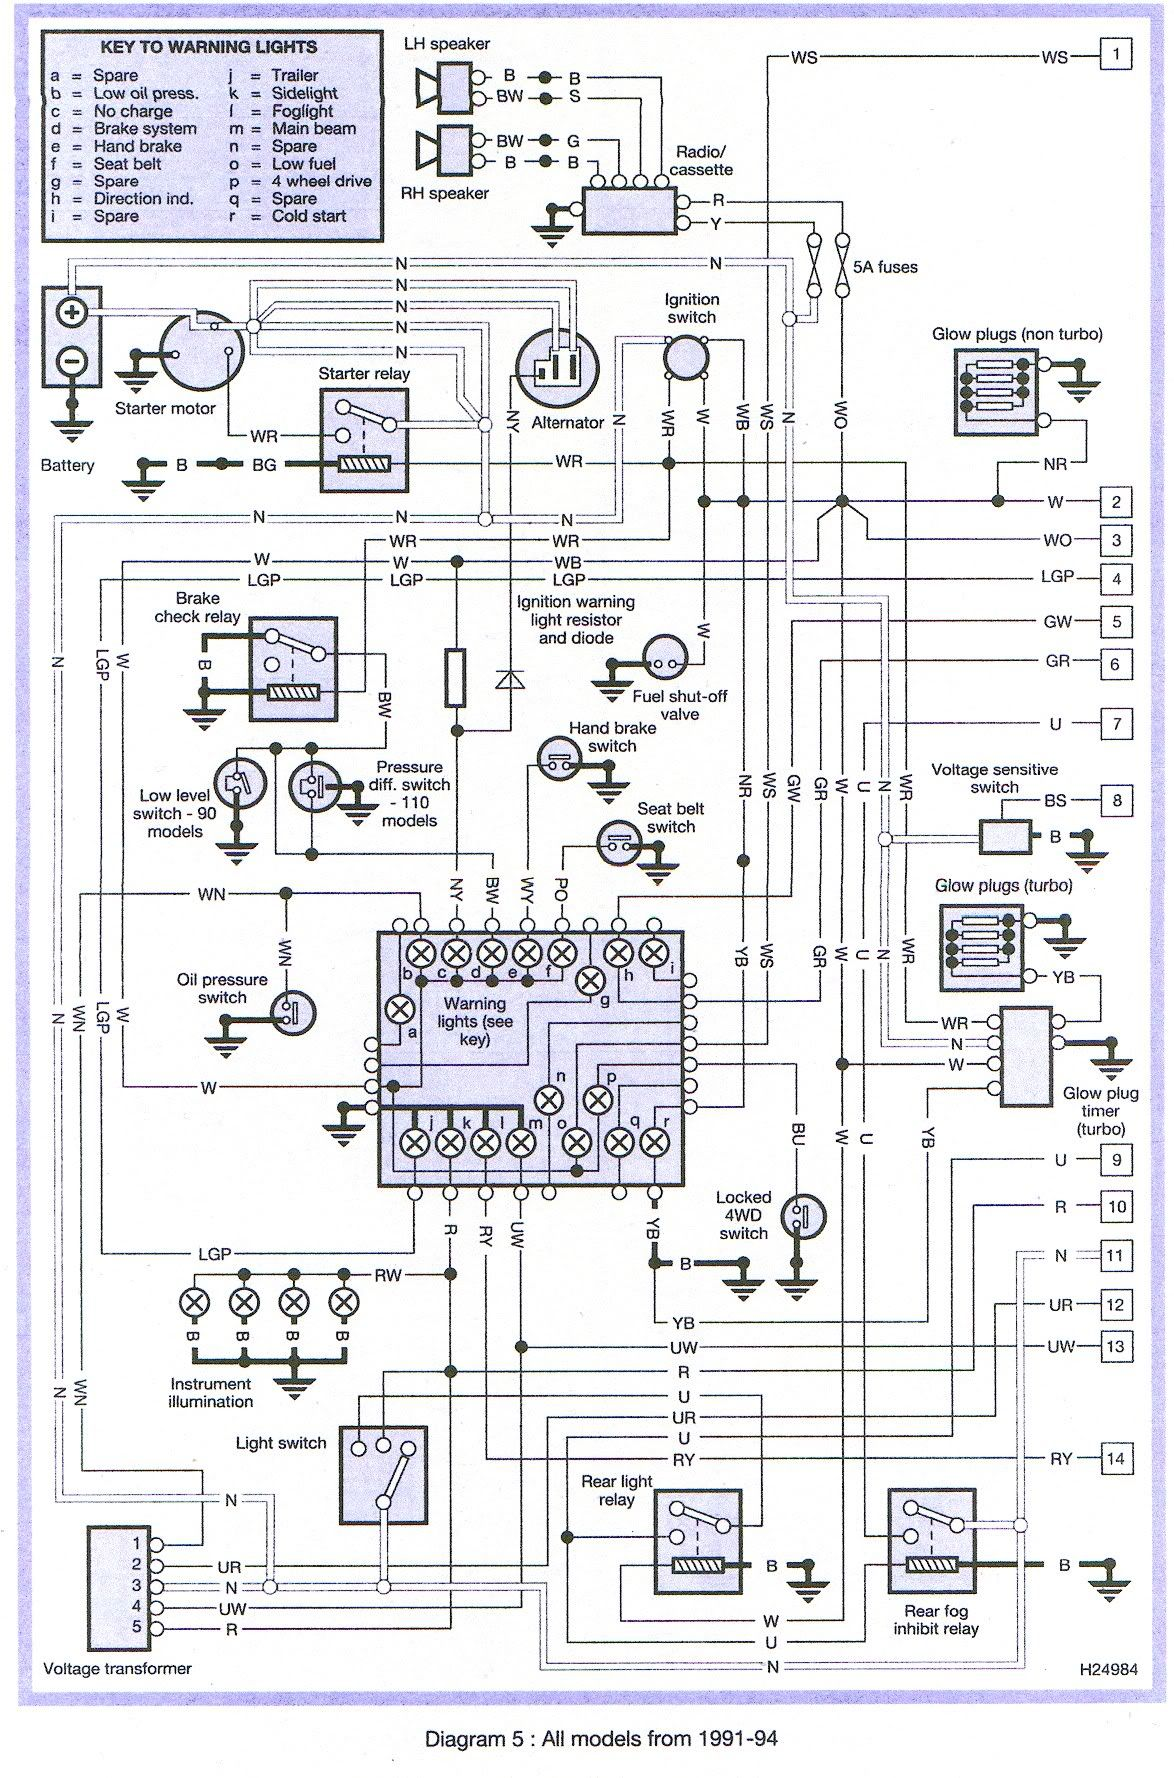 Land Rover Defender Wiring Diagram Mercury Outboard Wiring Diagram Db9